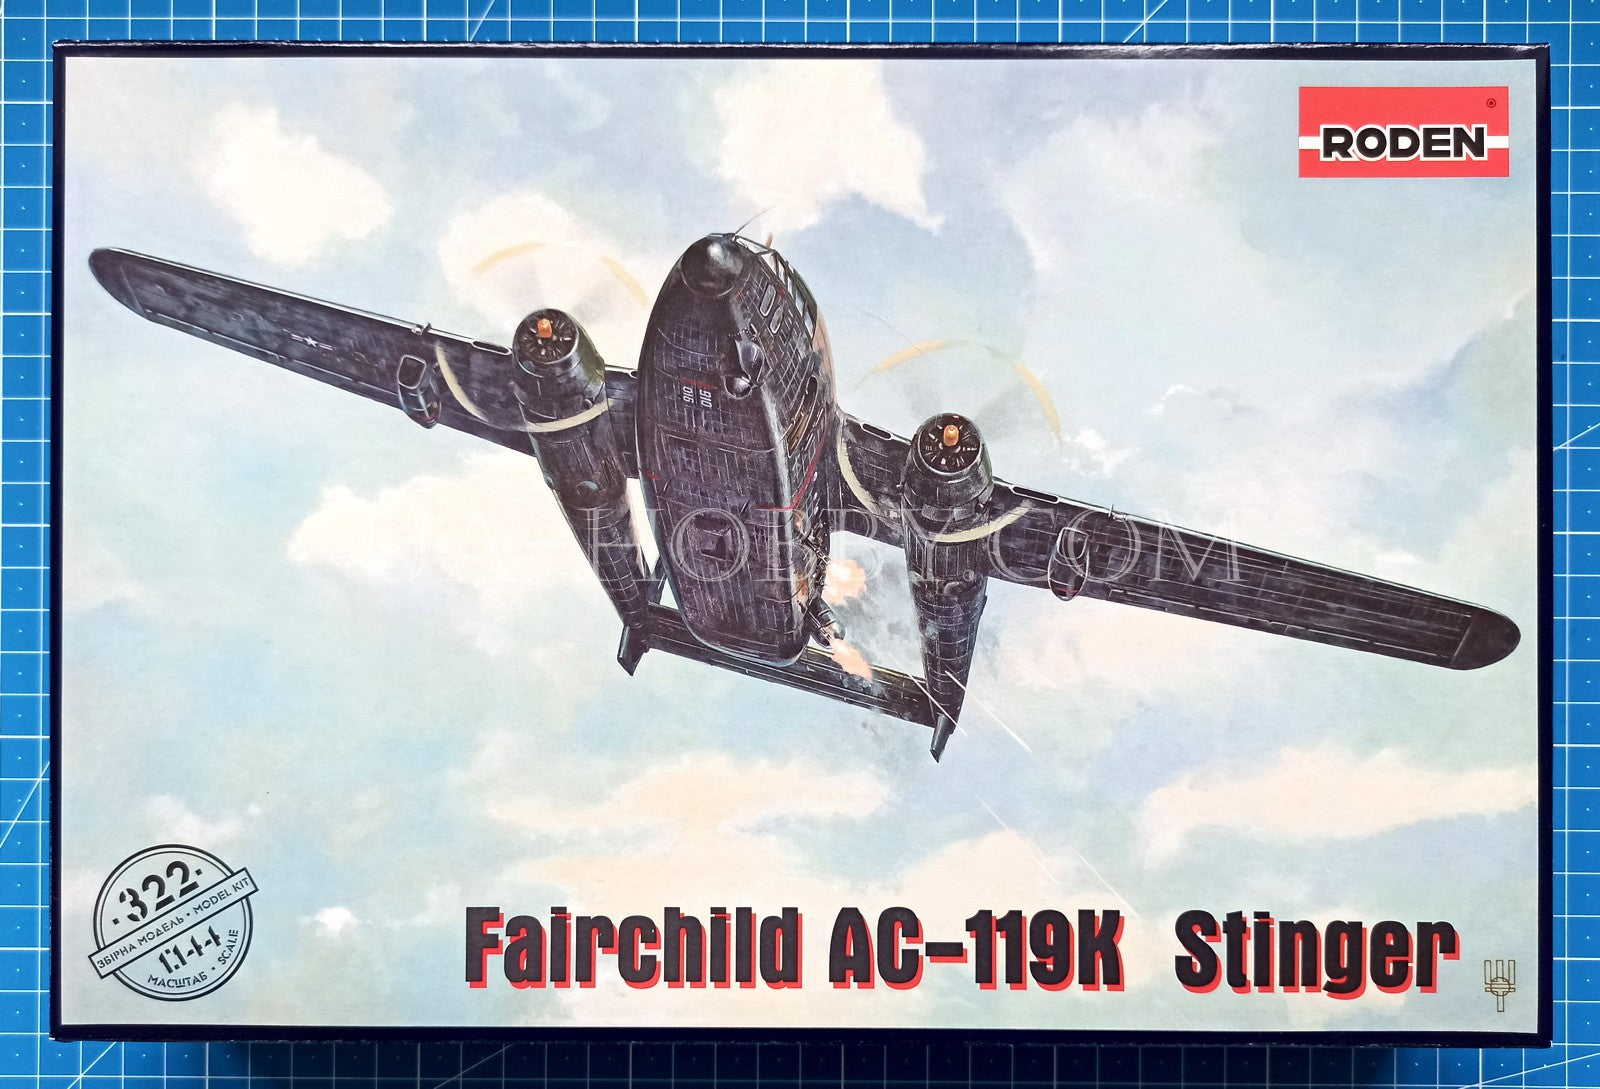 1/144 Fairchild AC-119K Stinger. Roden 322